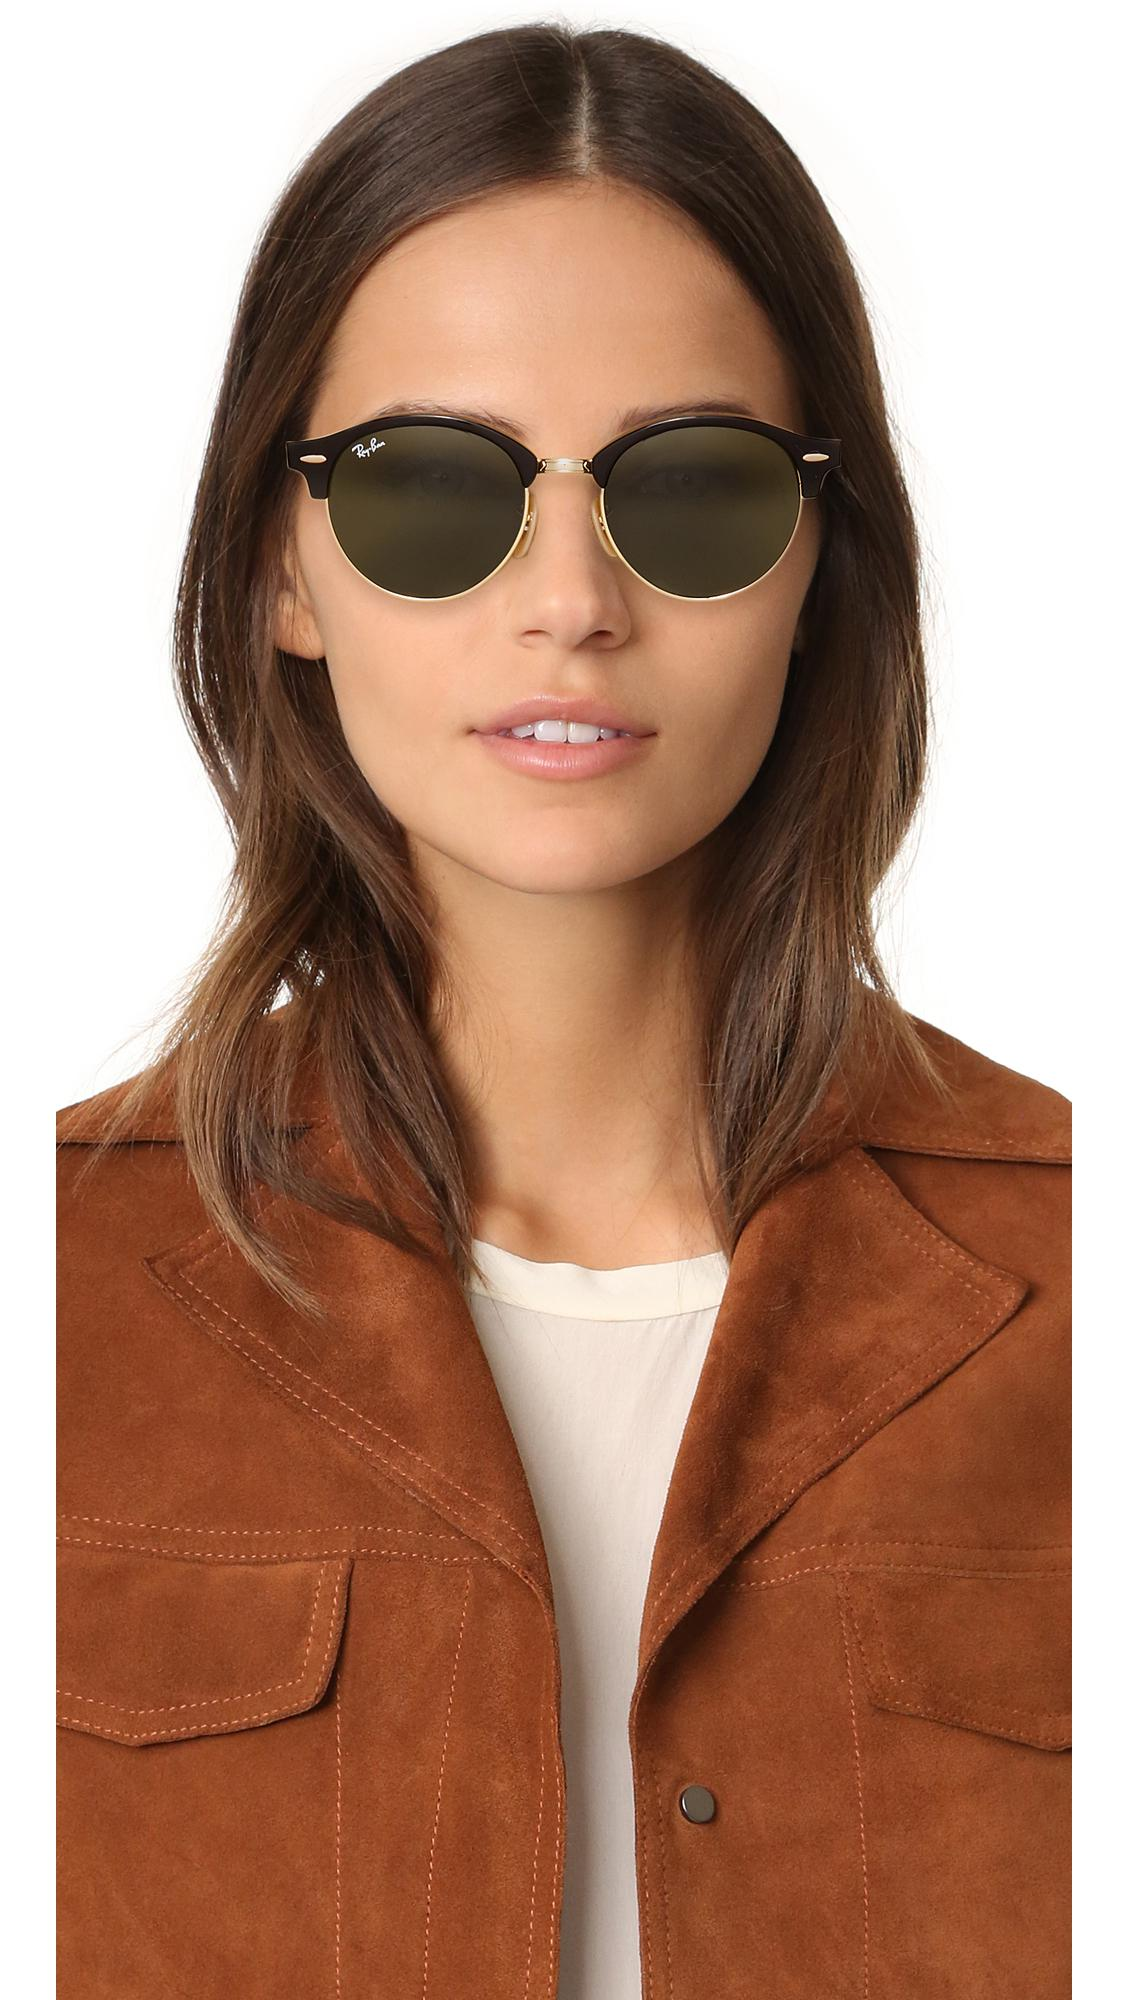 d9514352601 Clubmaster Sunglasses Women « One More Soul